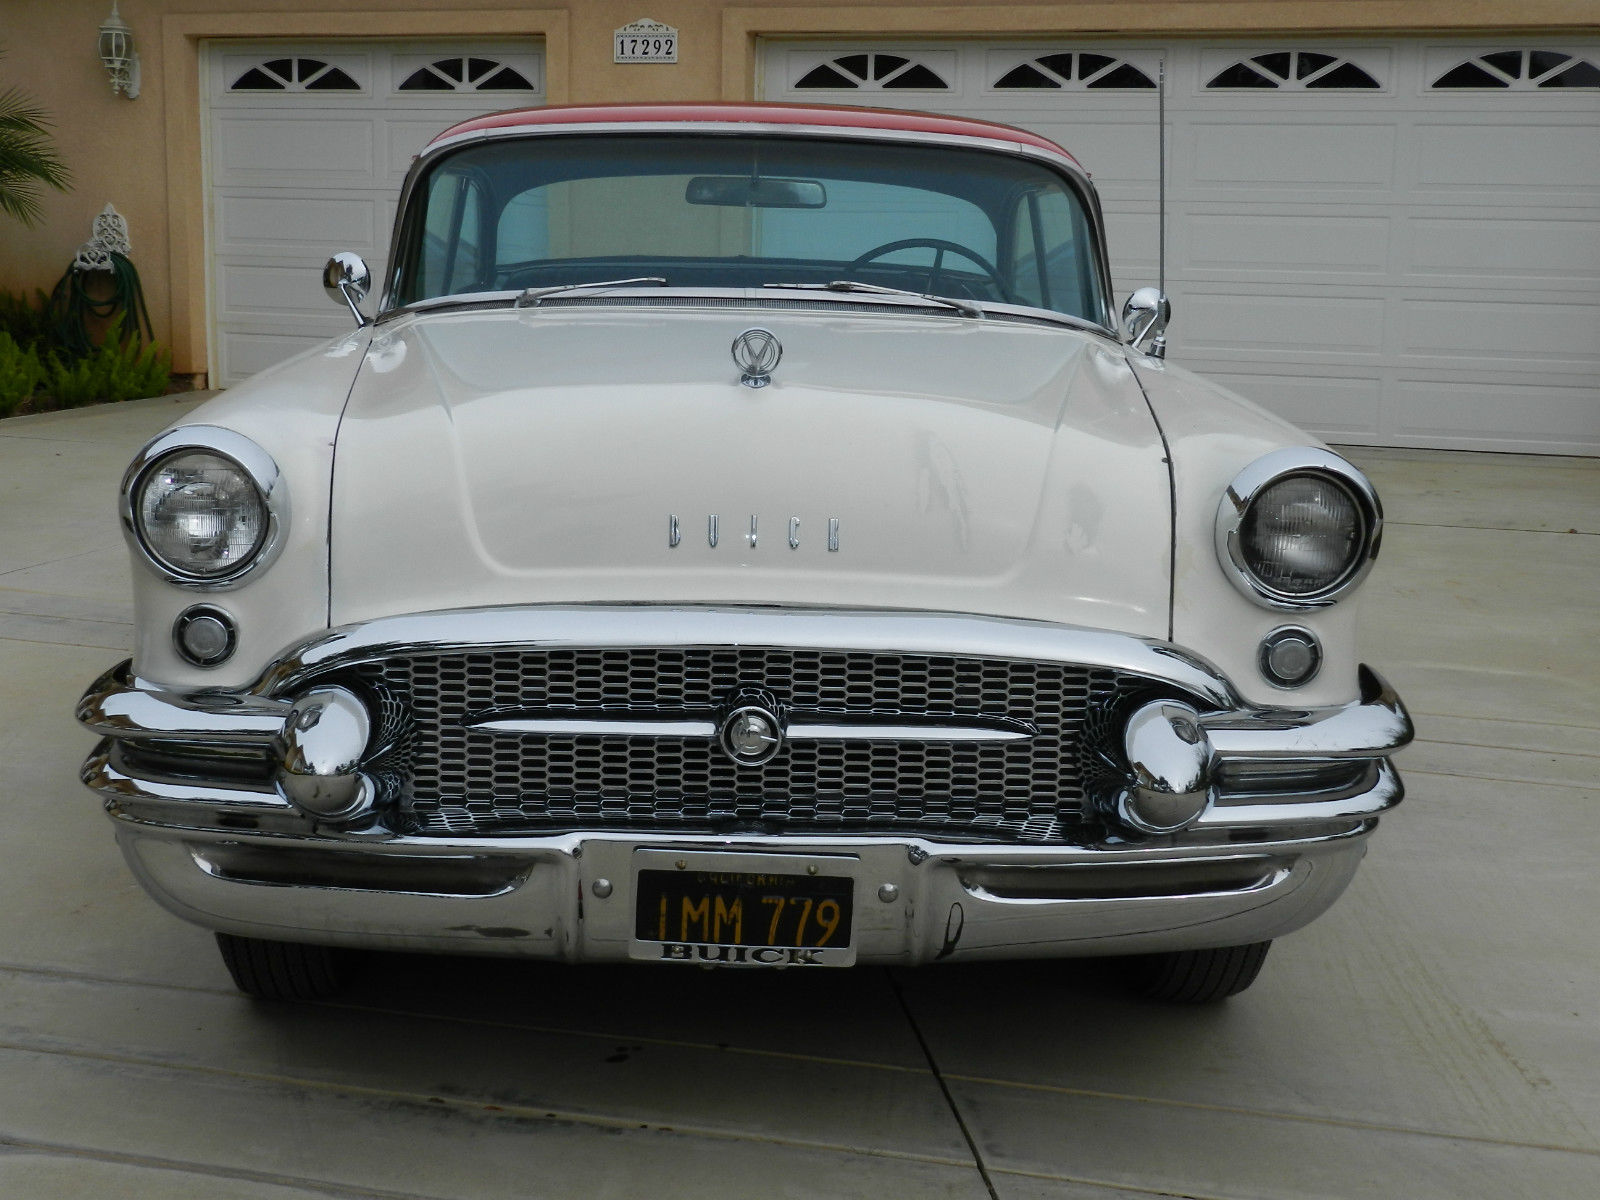 1955 buick special 2 door hardtop nice for sale in riverside california united states. Black Bedroom Furniture Sets. Home Design Ideas